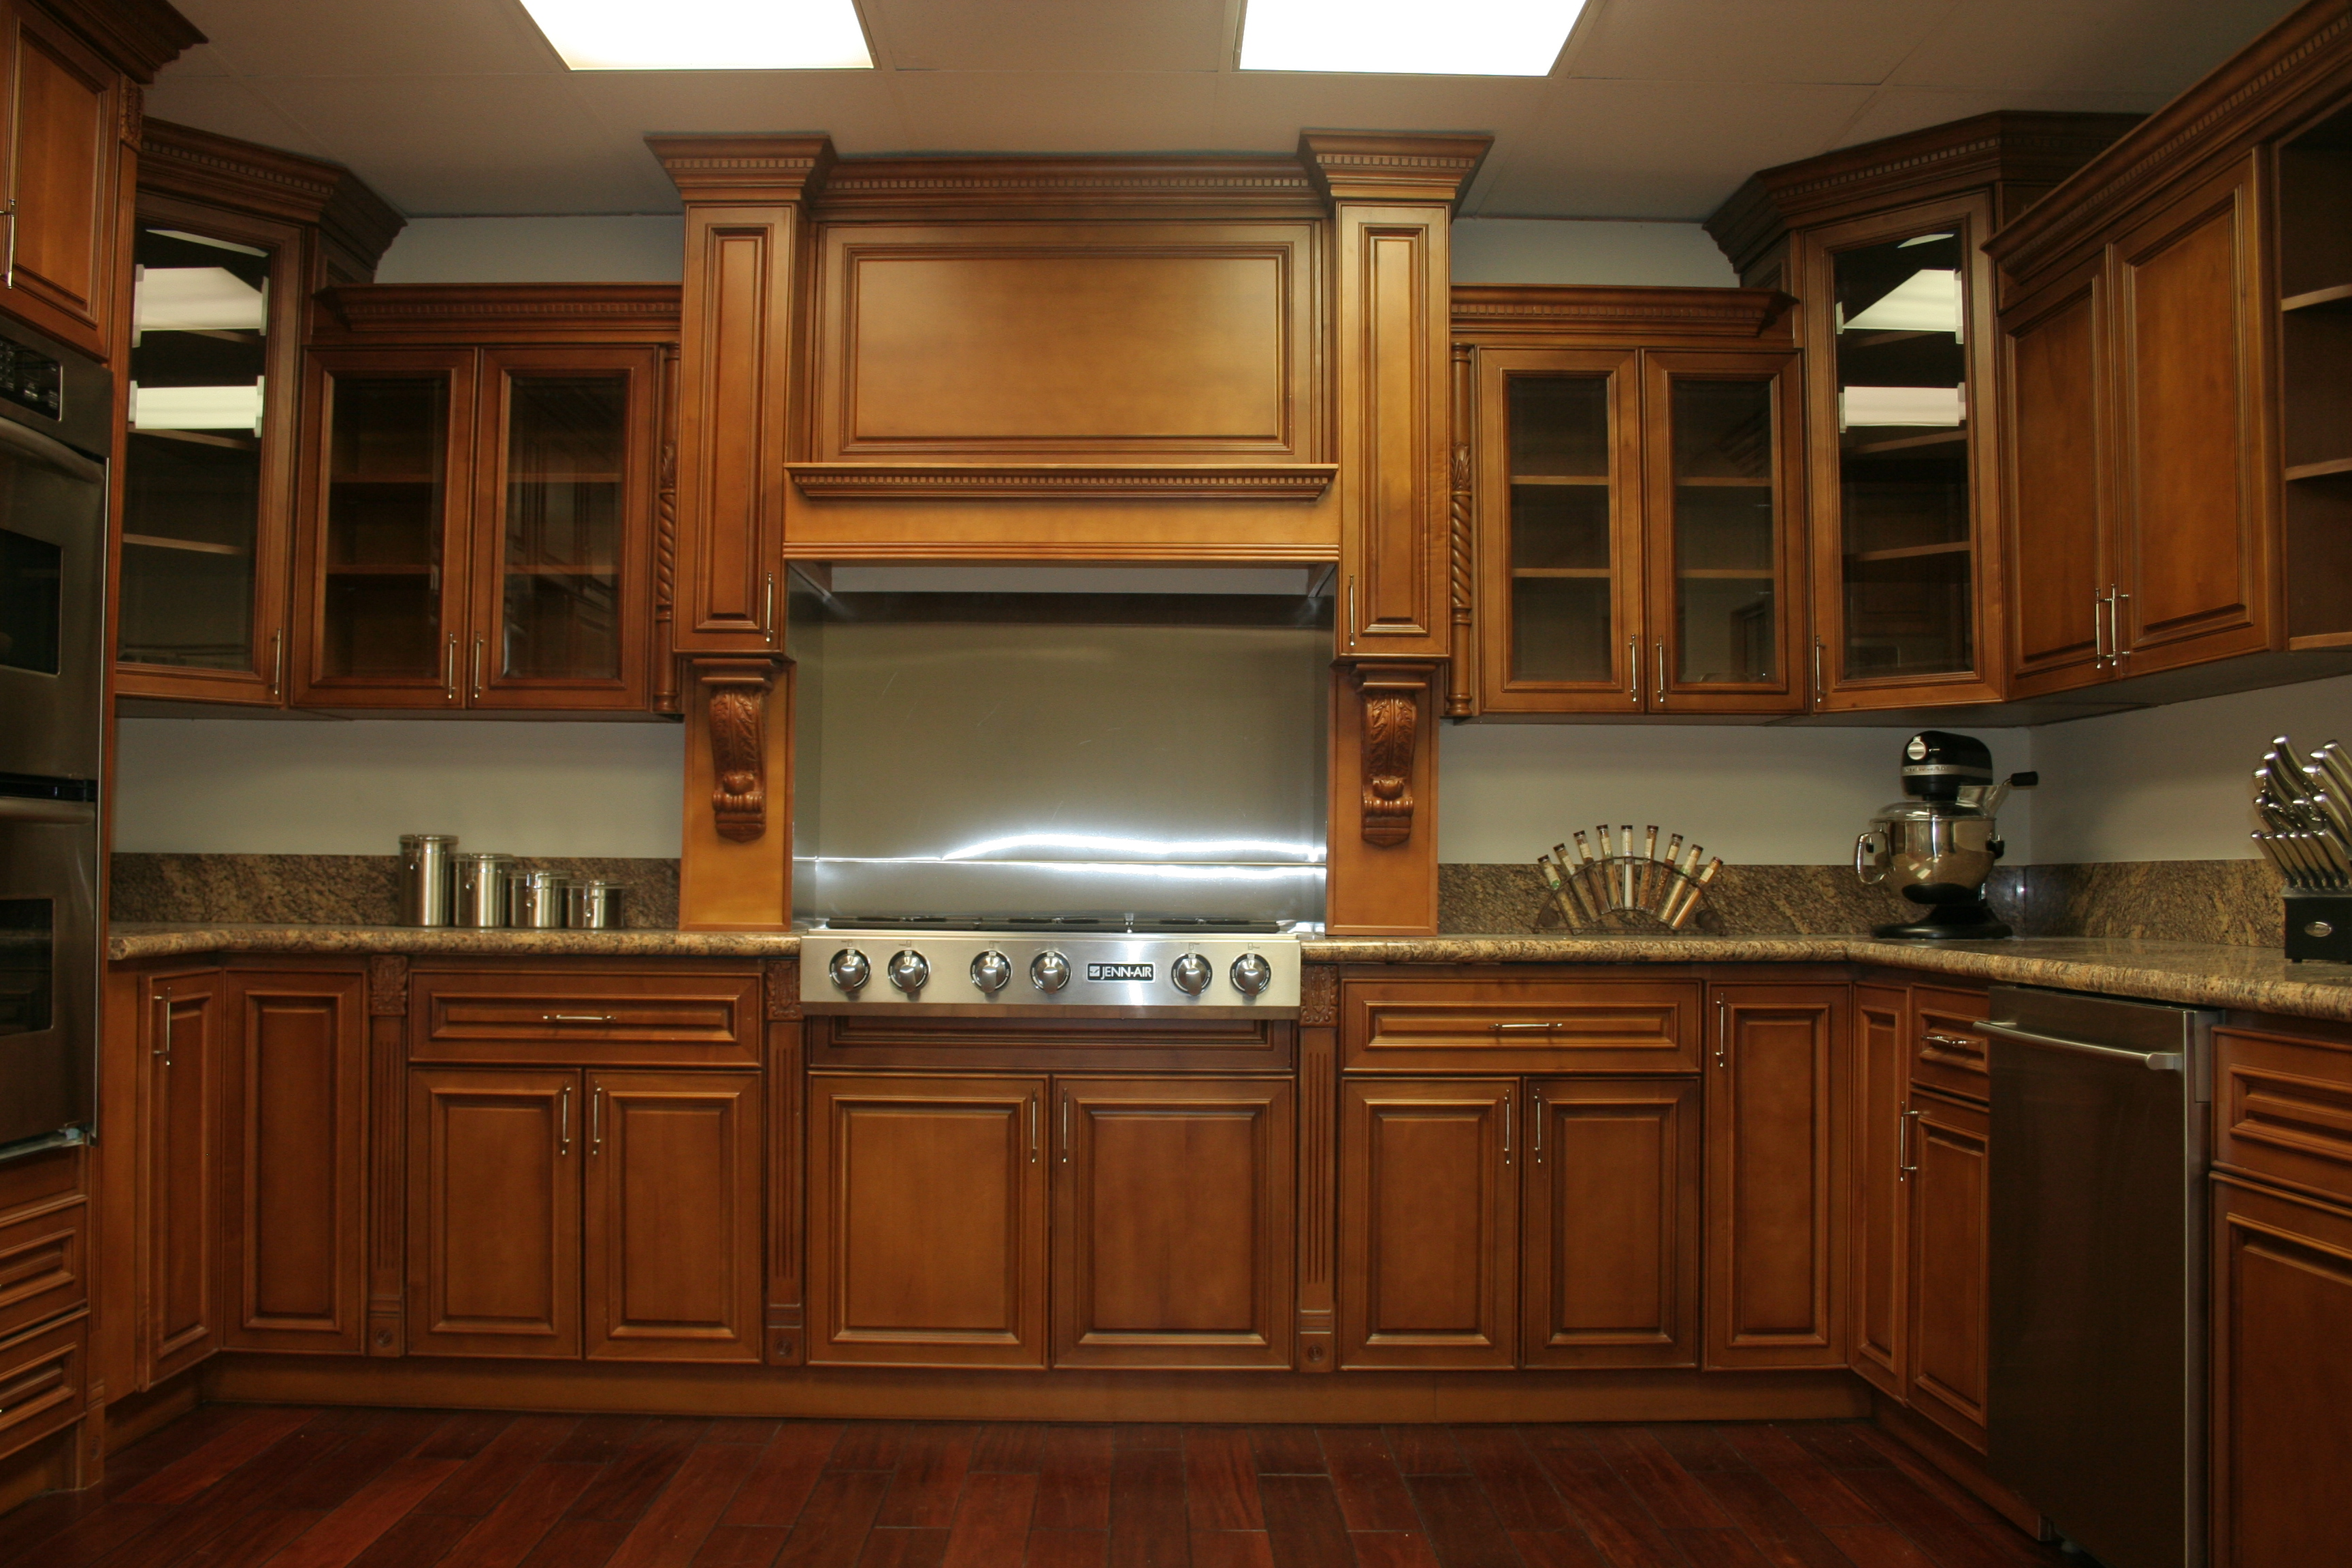 Interior ideas deep brown wooden maple kitchen cabinets for Cupboards and cabinets